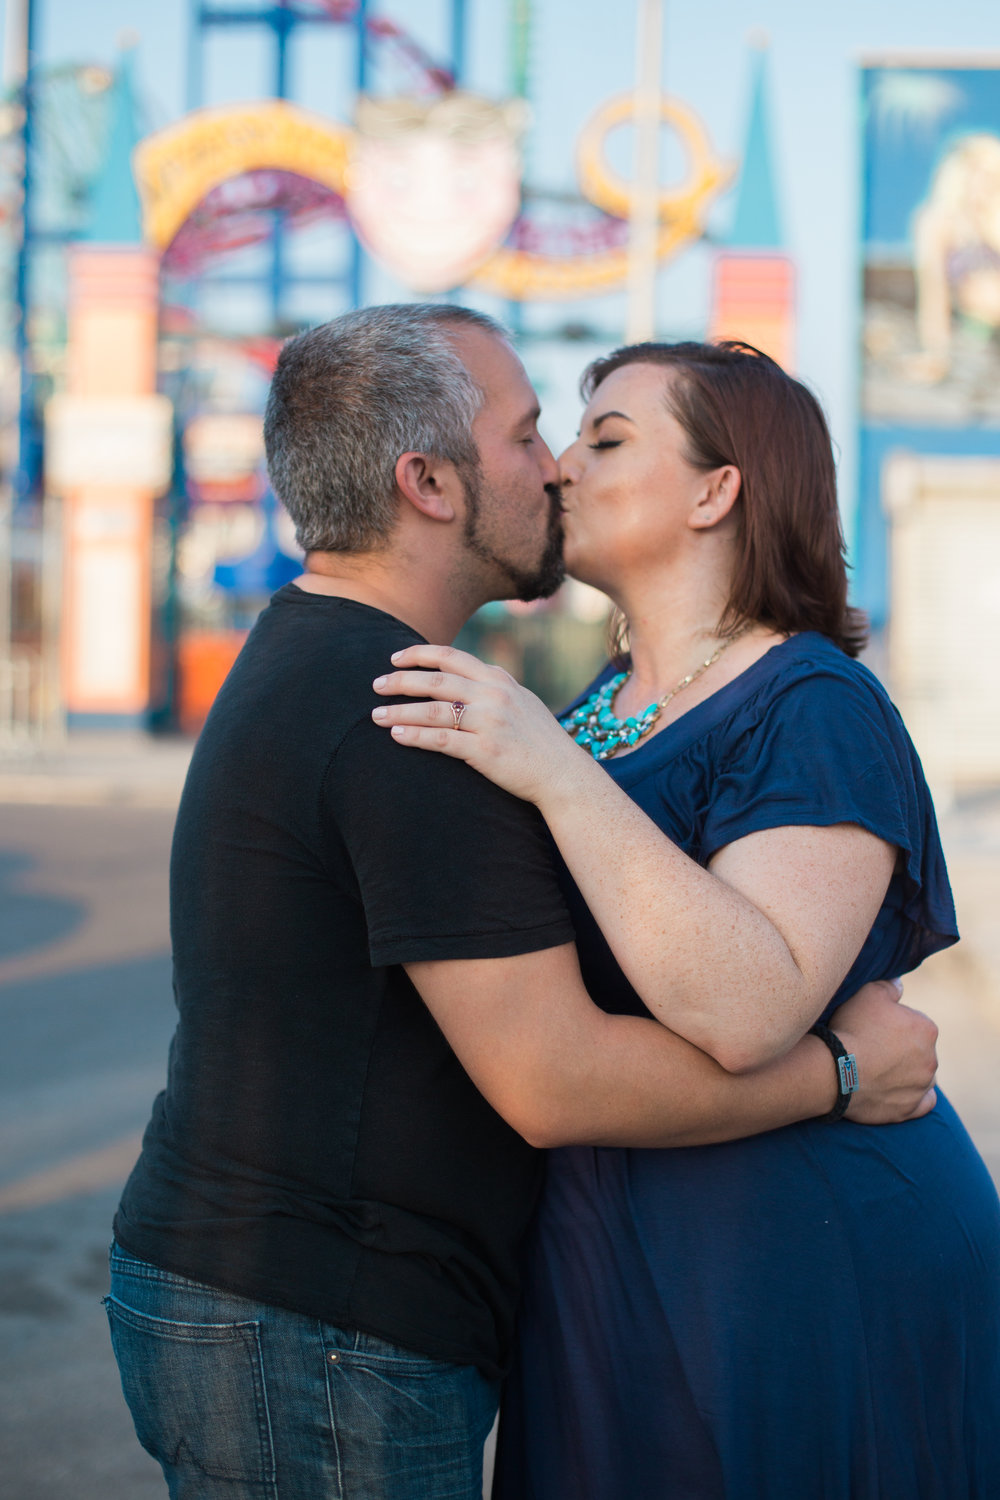 Kate-Alison-Photography-Coney-Island-Brooklyn-Engagement-Session-Jennifer-Manny-27.JPG